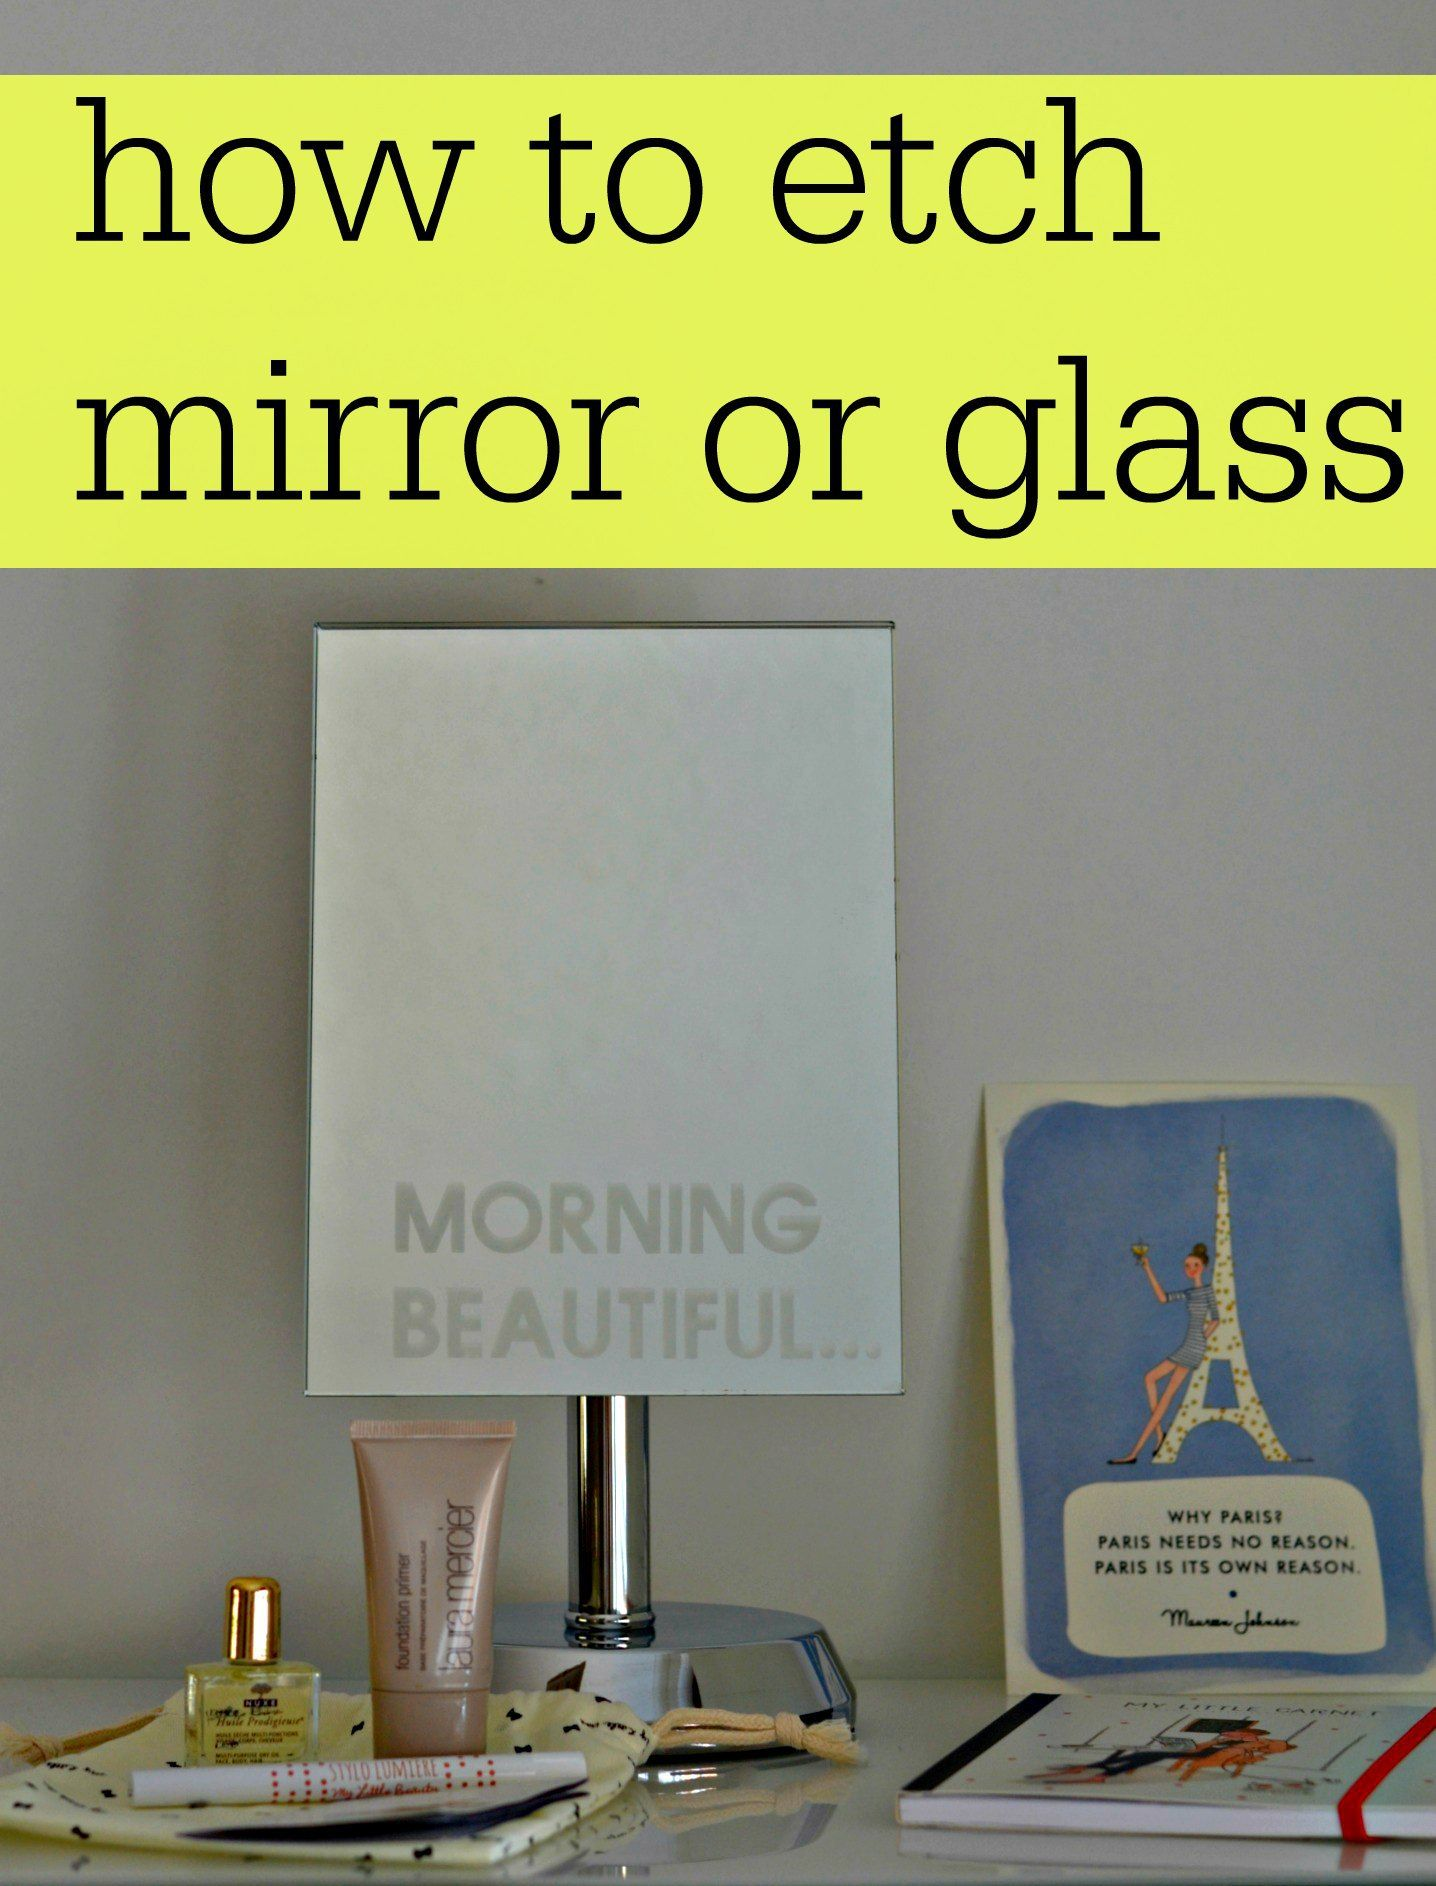 How To Etch Glass How To Etch Mirror Or Glass Cricut Explore Cricut Glass And